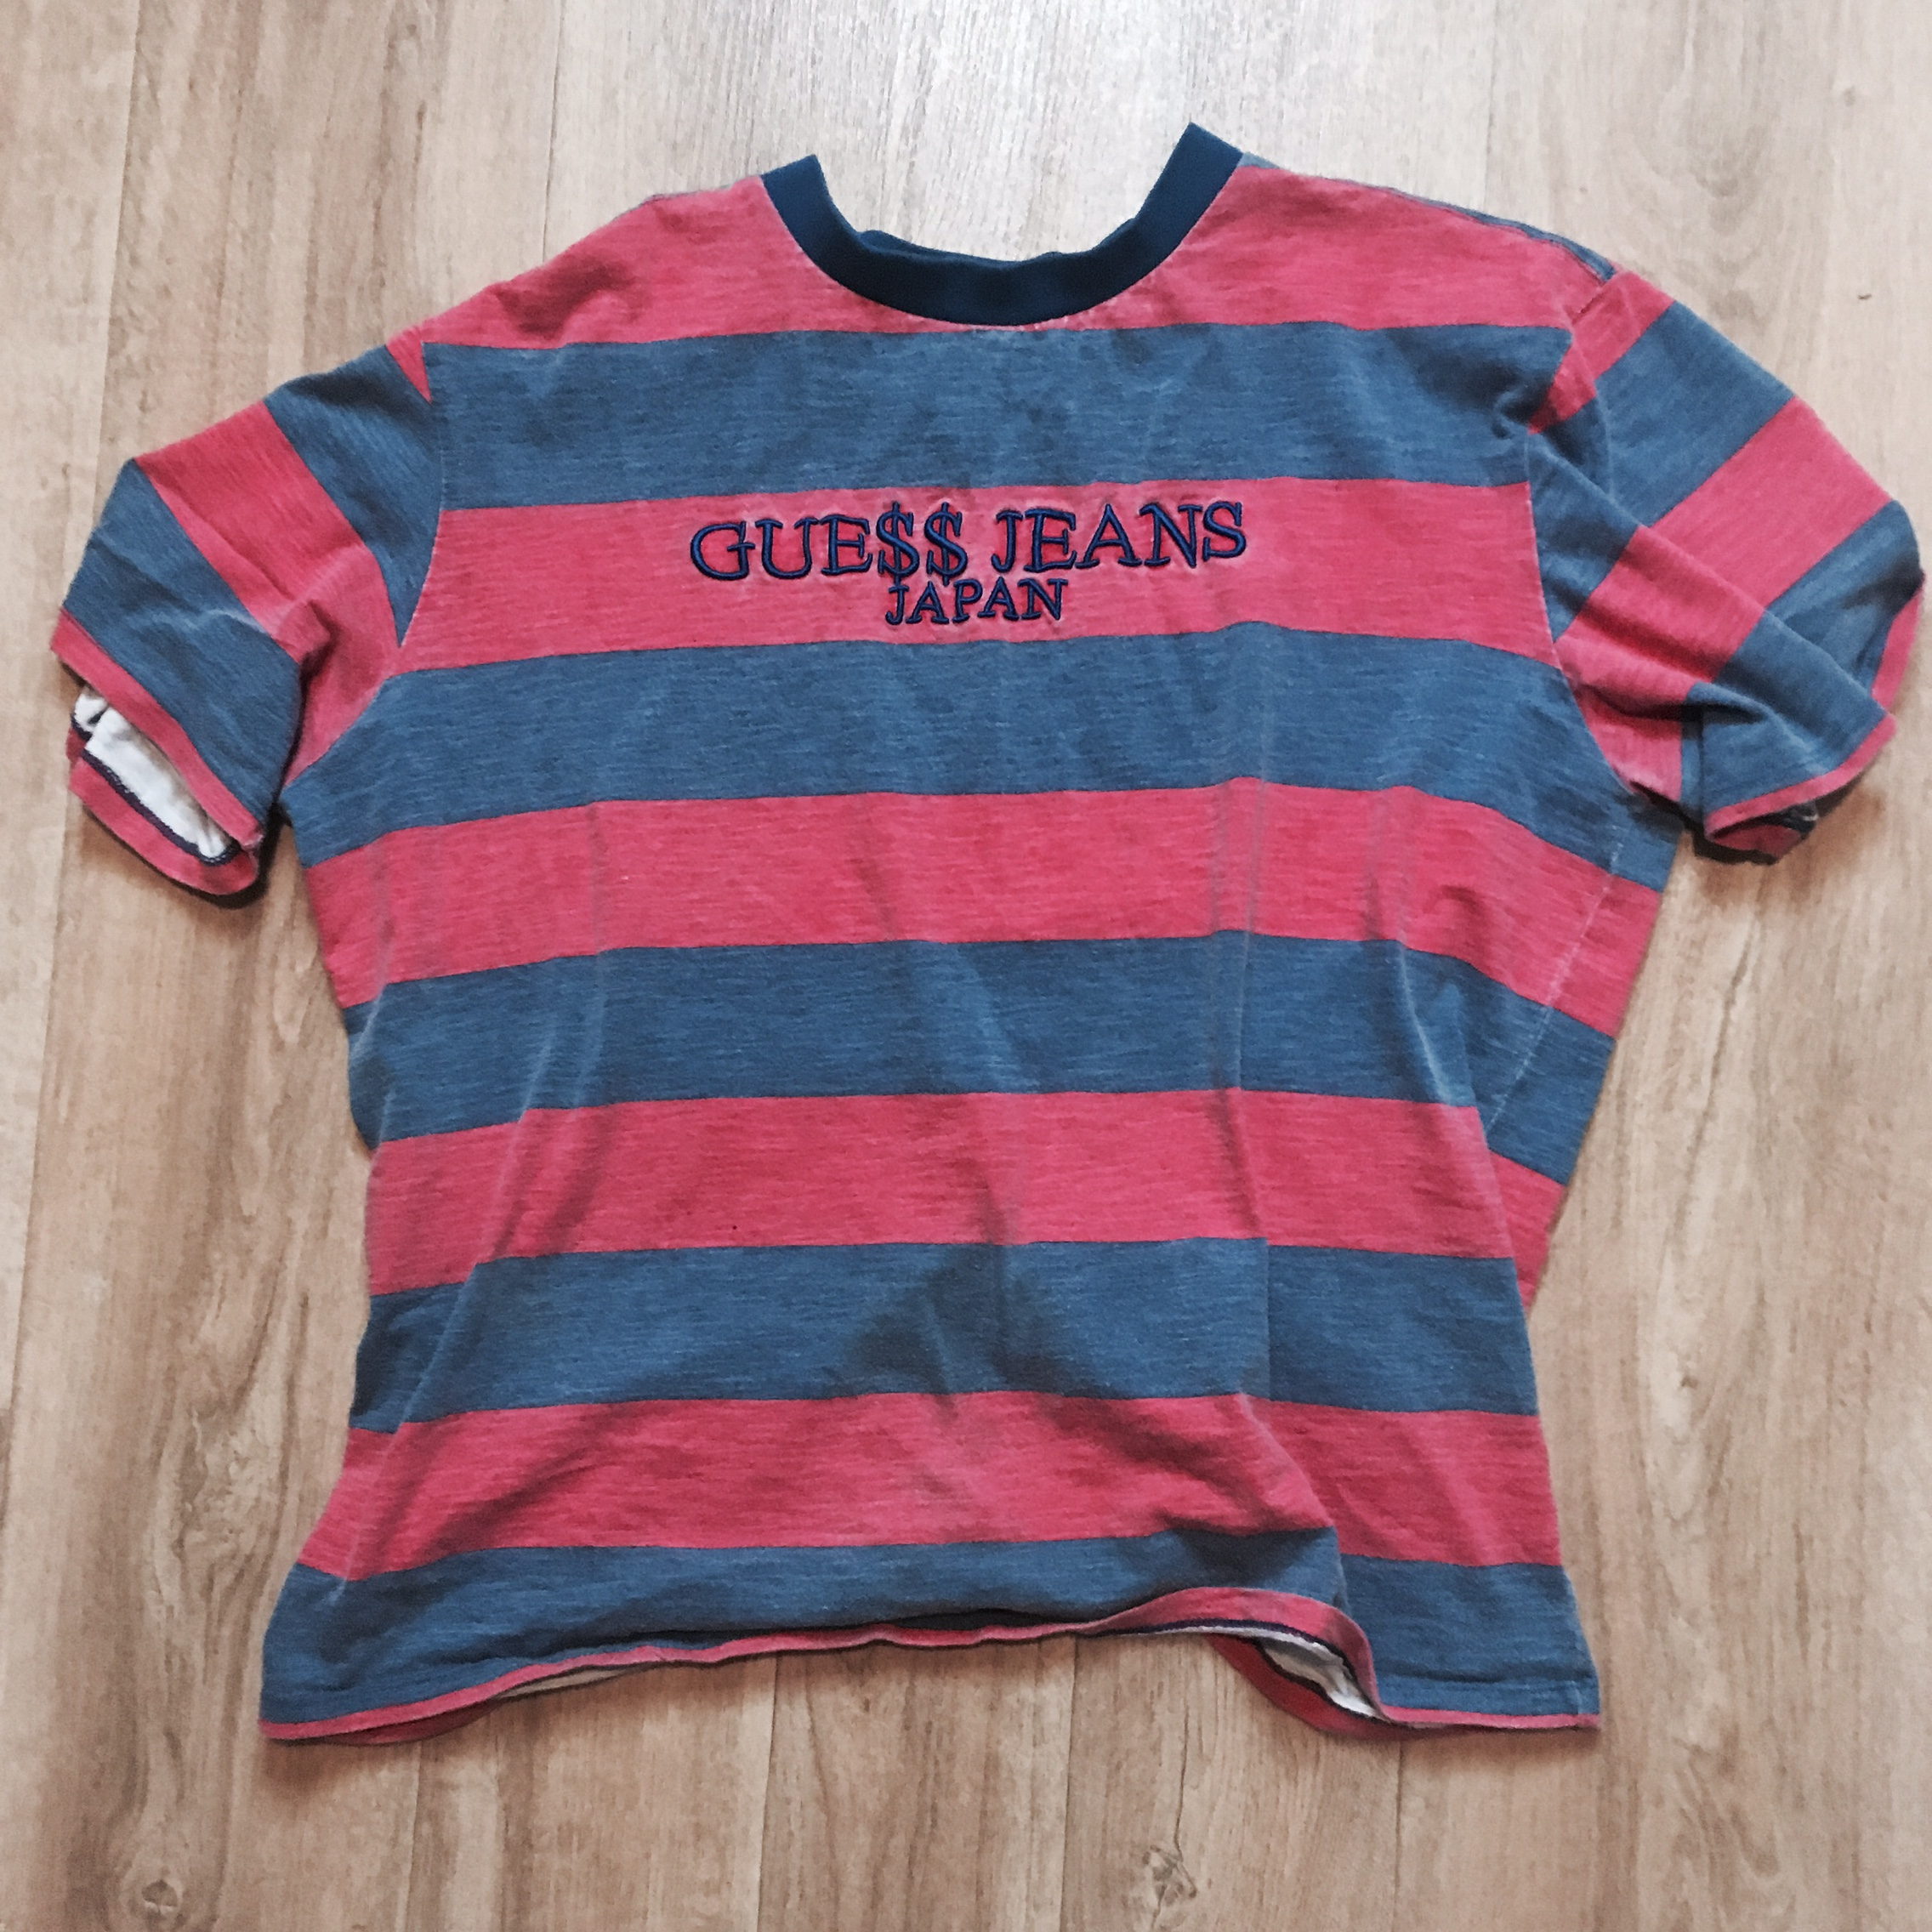 GUESS JEANS X A$AP ROCKY JAPAN T Shirt Red and blue Depop